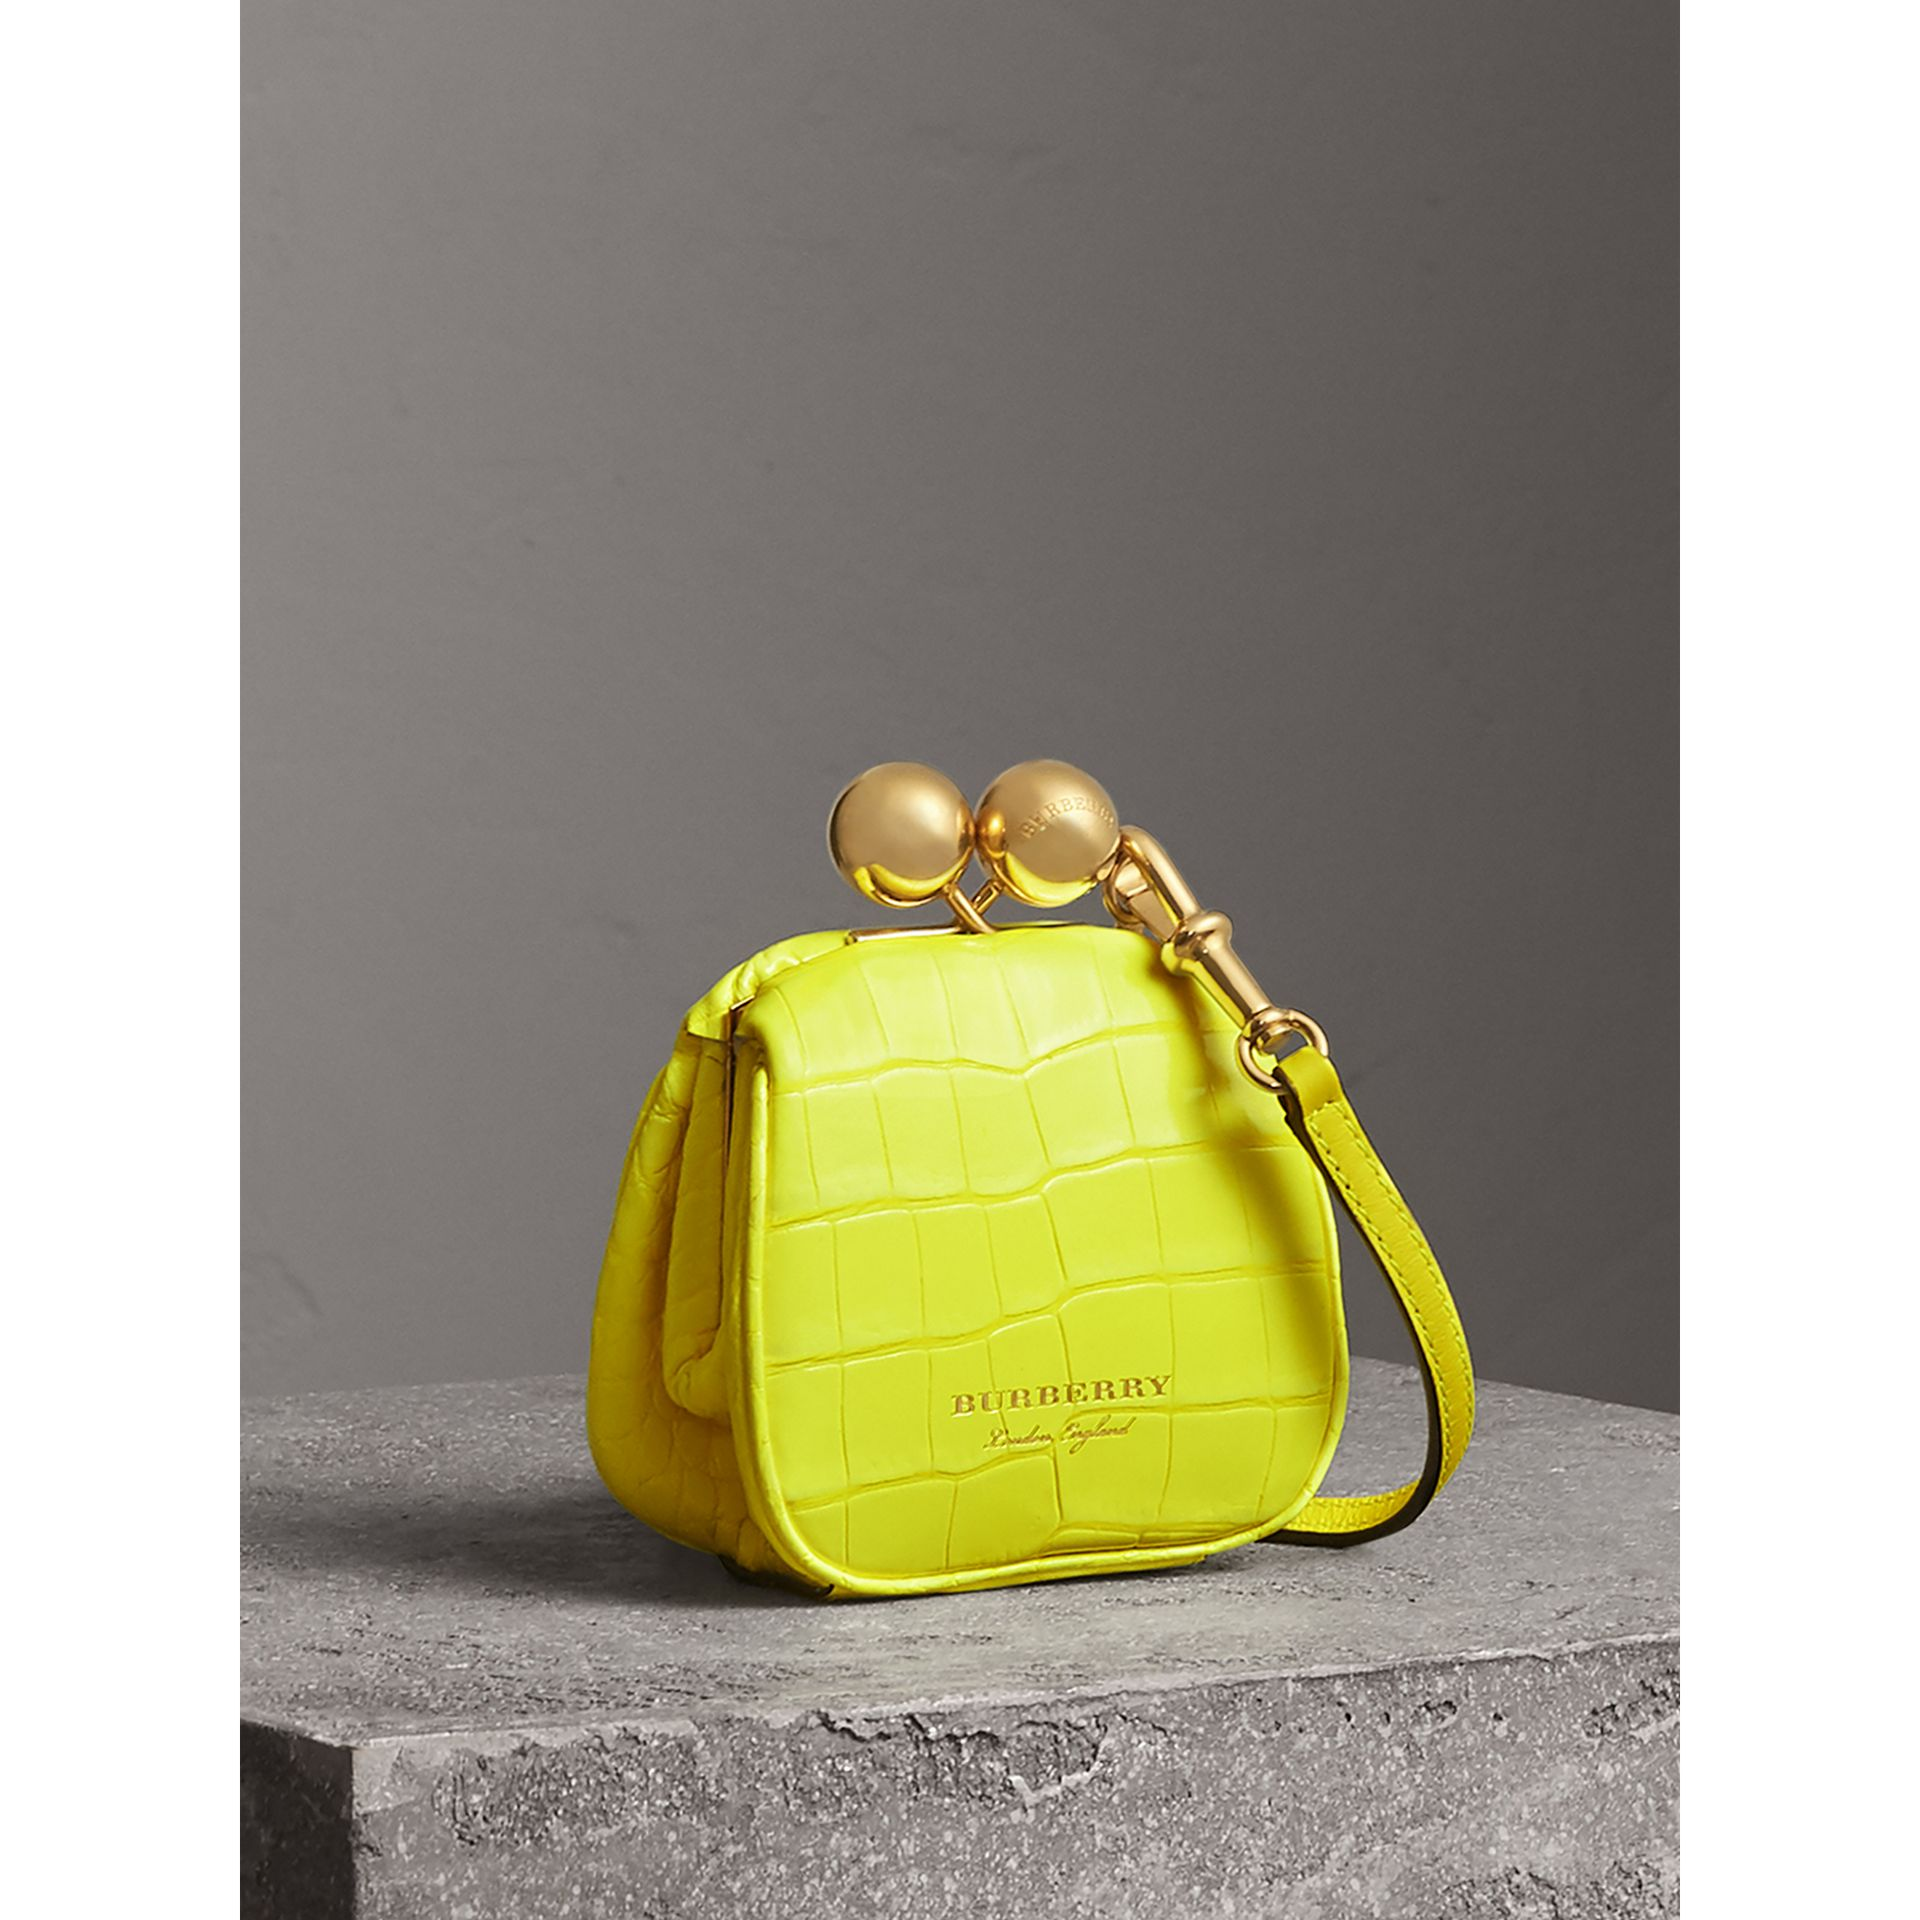 Mini Alligator Metal Frame Clutch Bag in Neon Yellow - Women | Burberry - gallery image 5